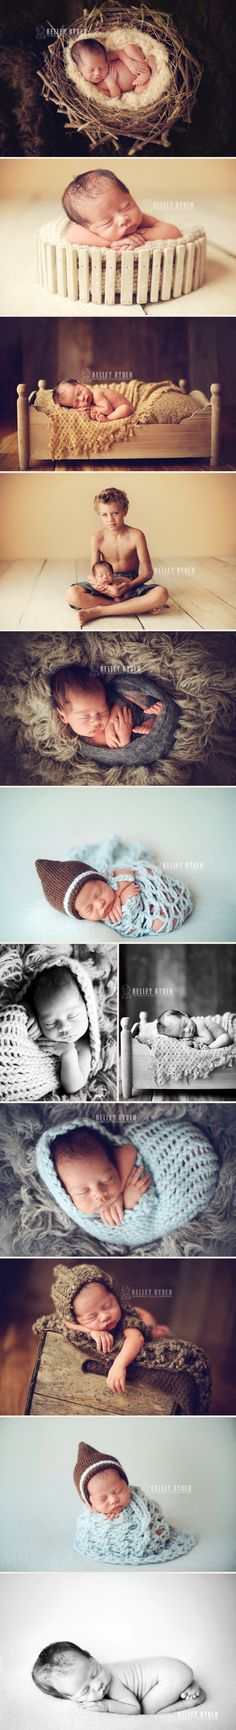 newborn boy | Kelley Ryden Photography